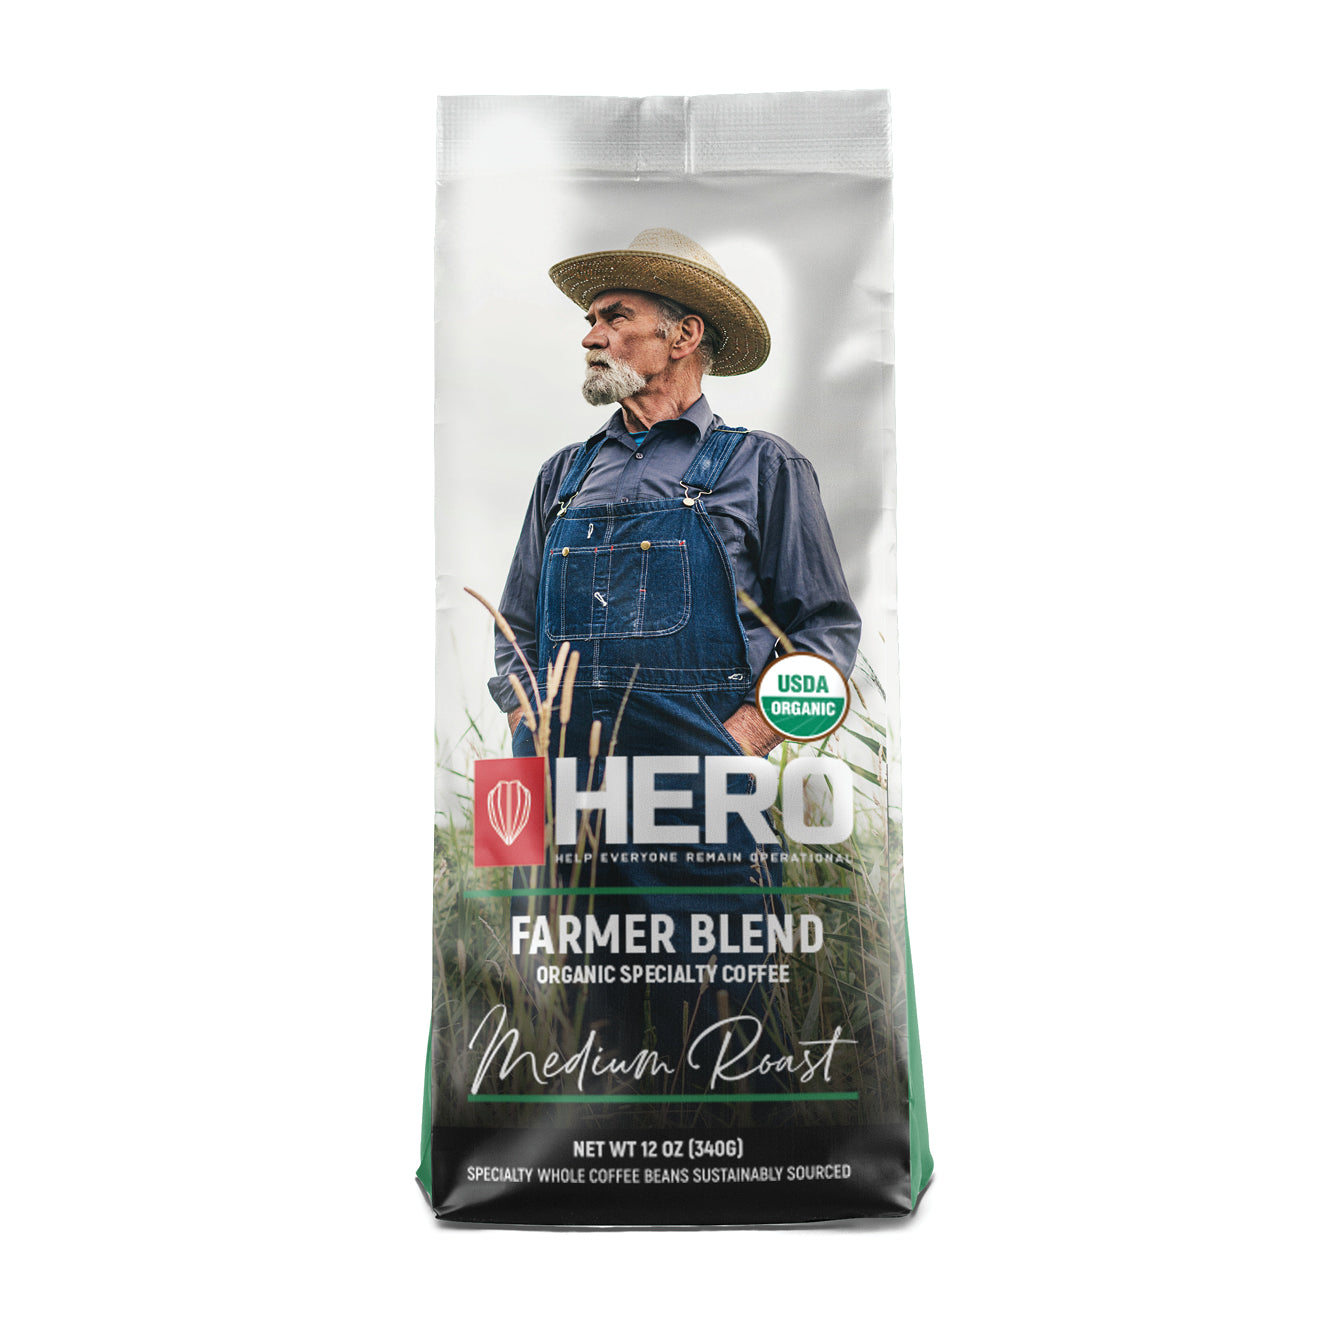 HERO Farmer Blend Organic Medium Roast Coffee